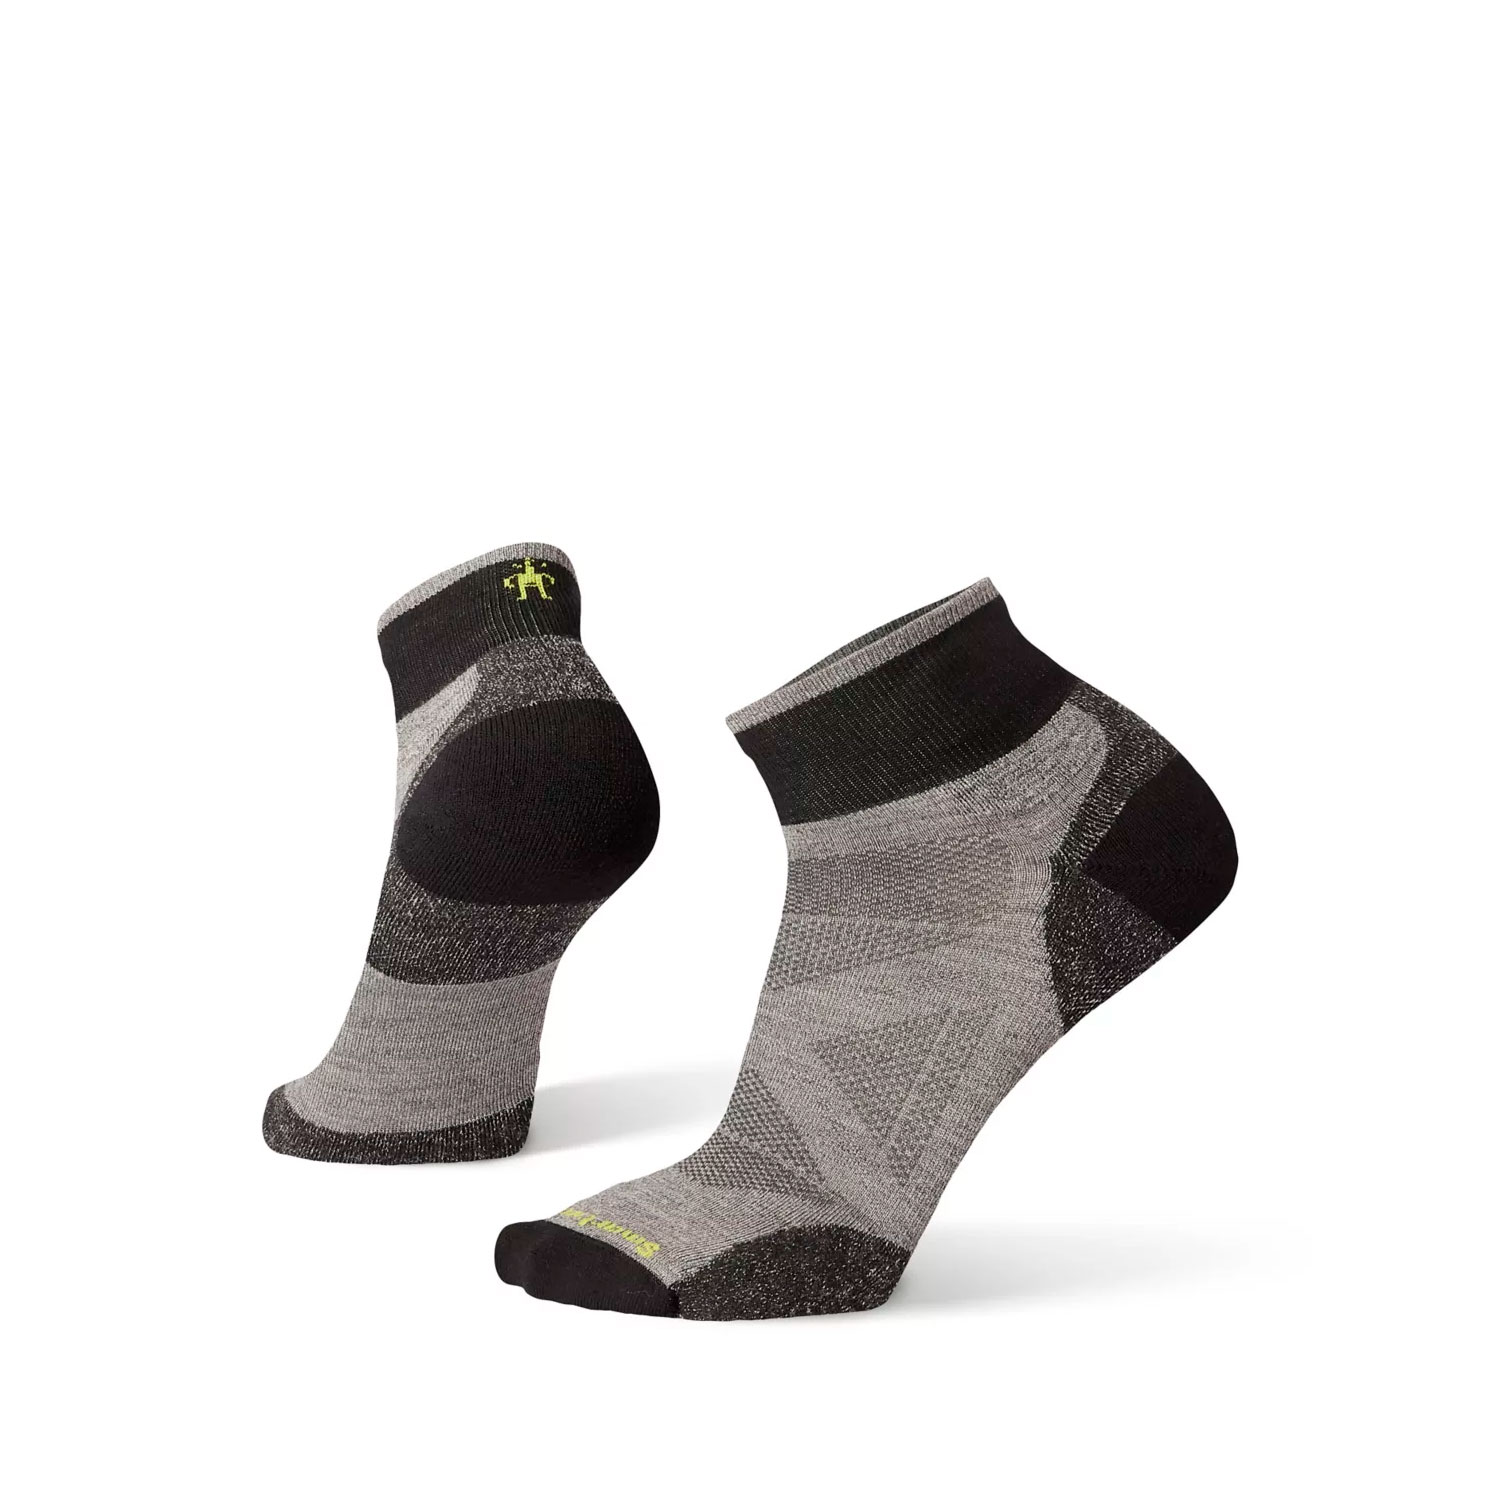 Smartwool Men's PhD® Pro Approach Mini Socks